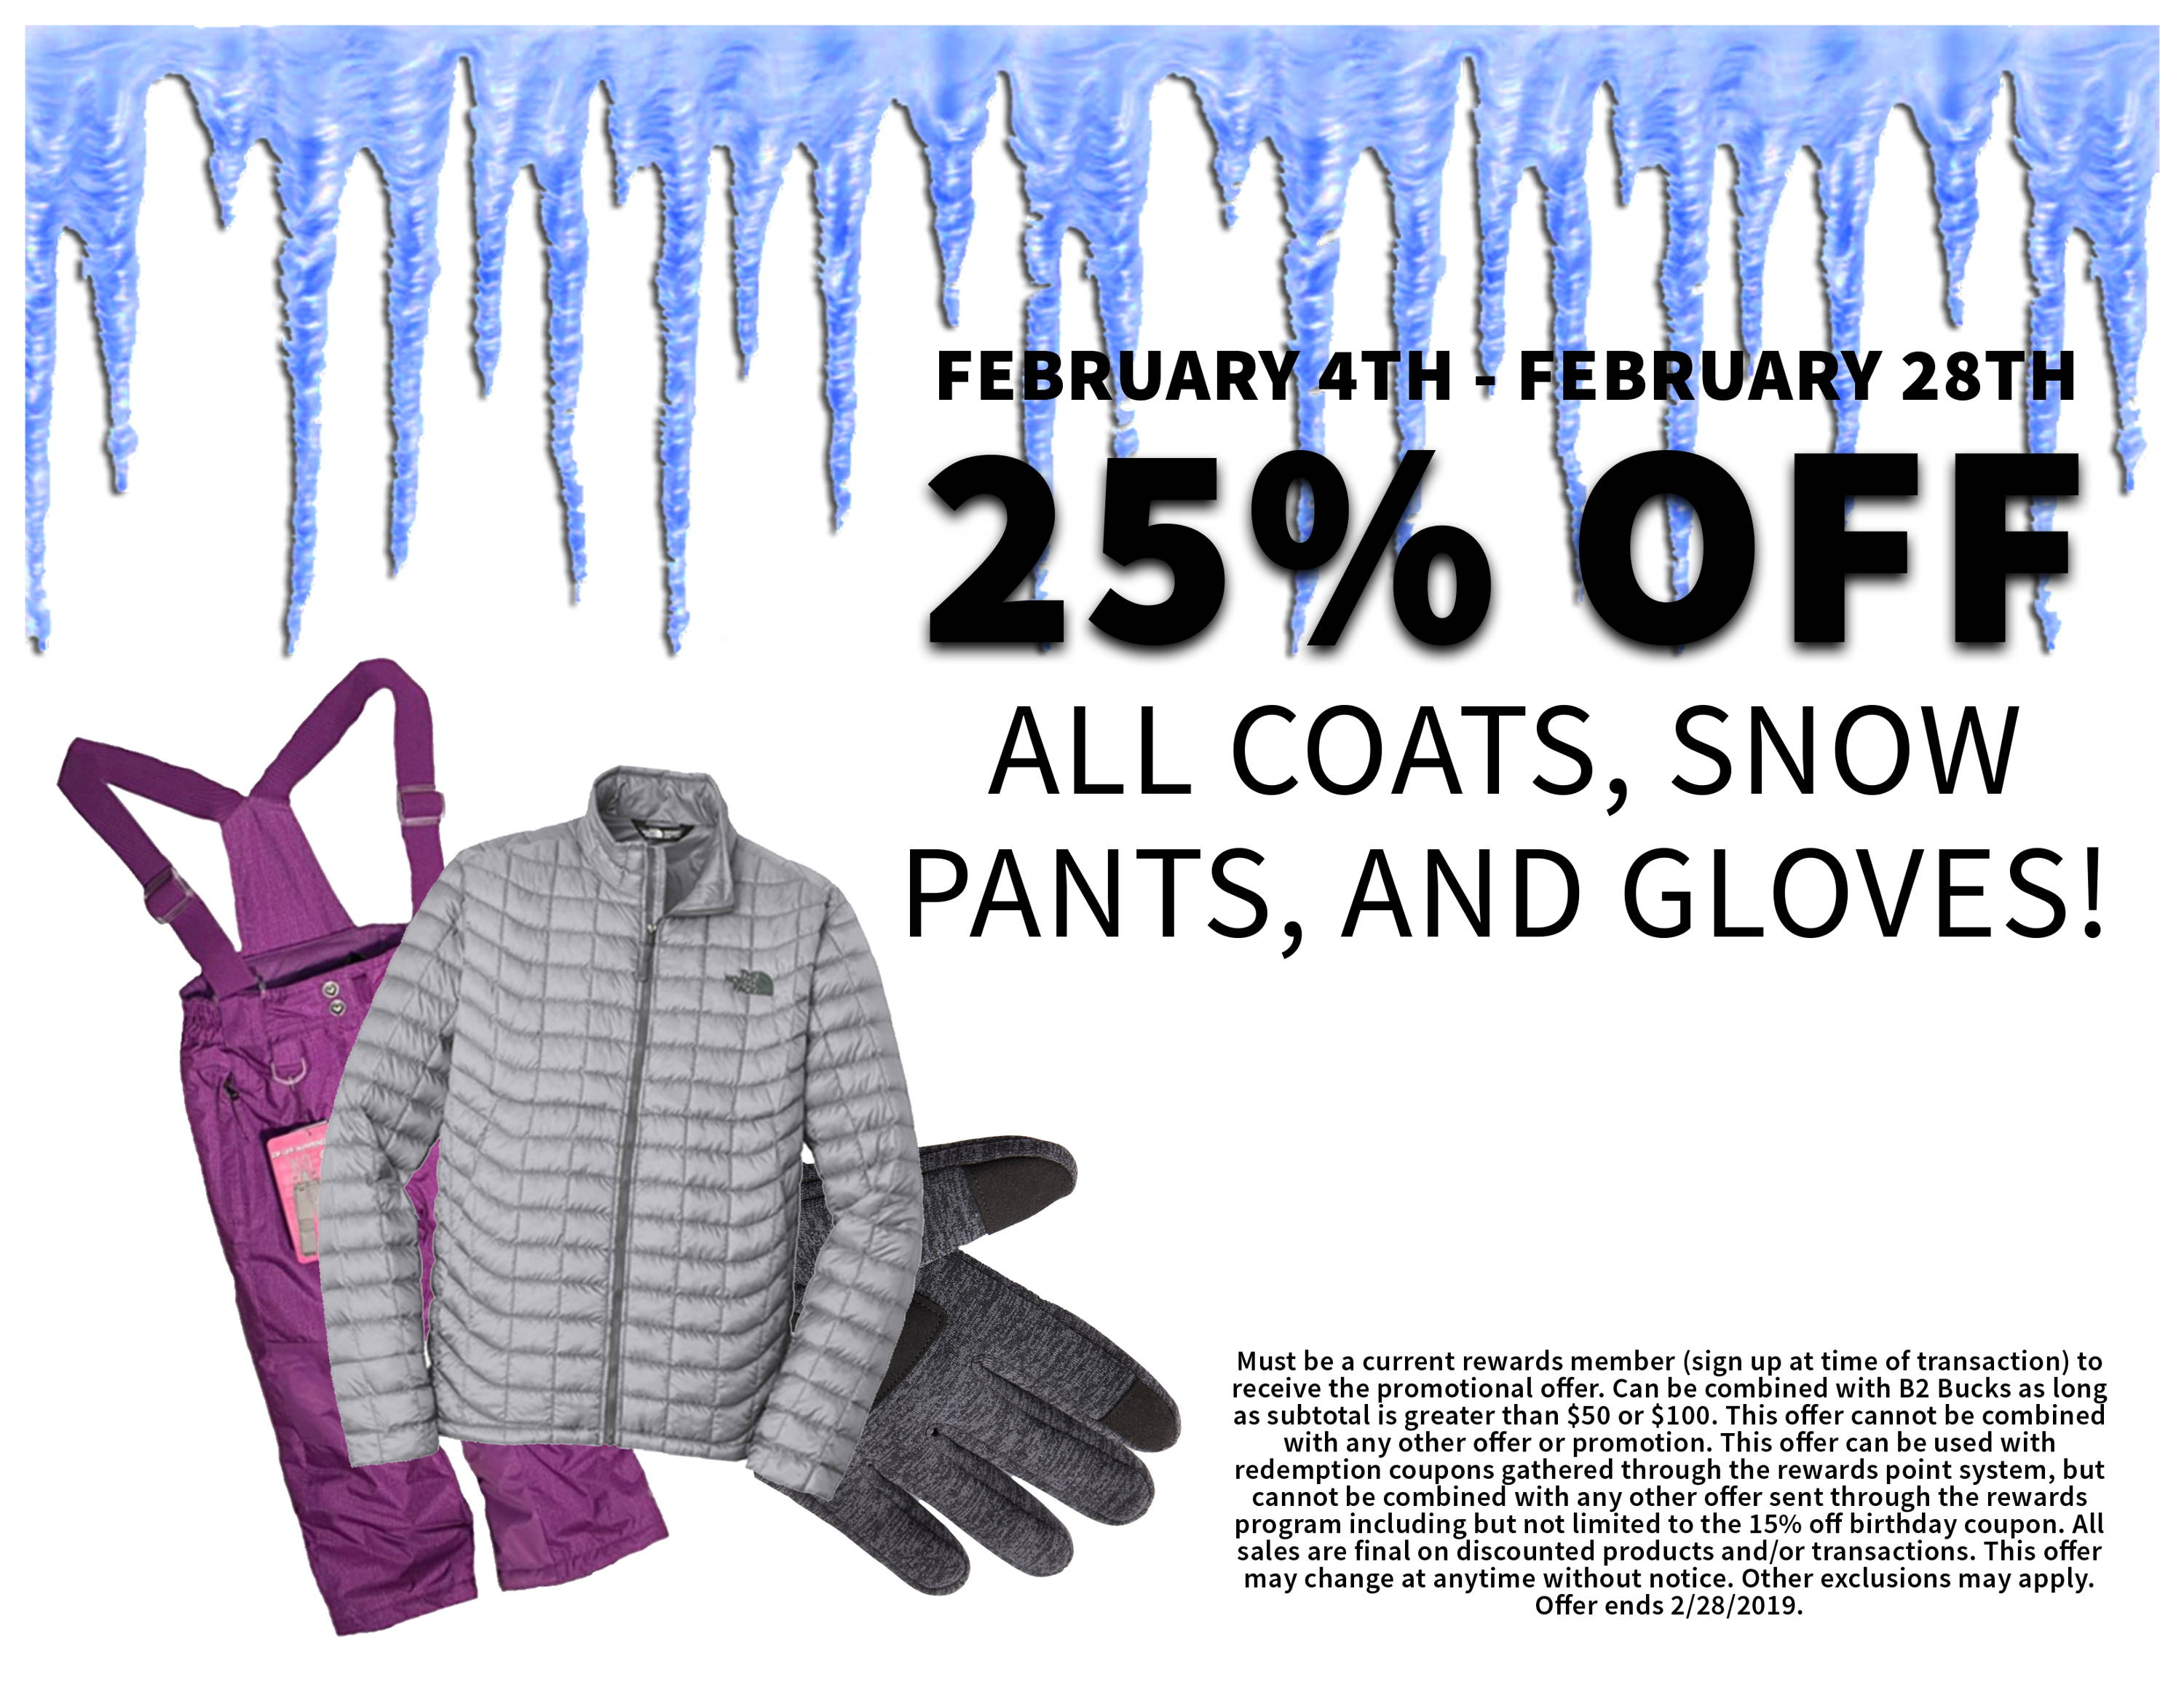 Winter Wear Sale, 25% Off All Coats, Snow Pants, and Gloves